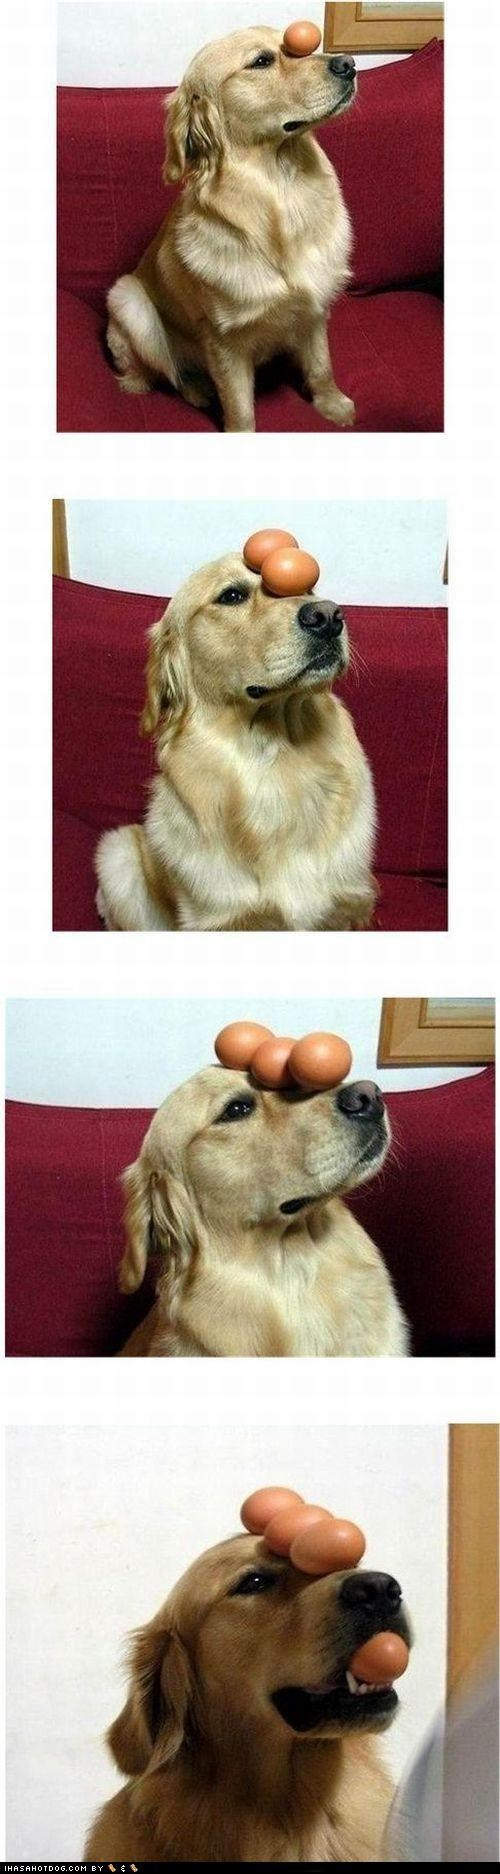 balance,eggs,golden retriever,nose